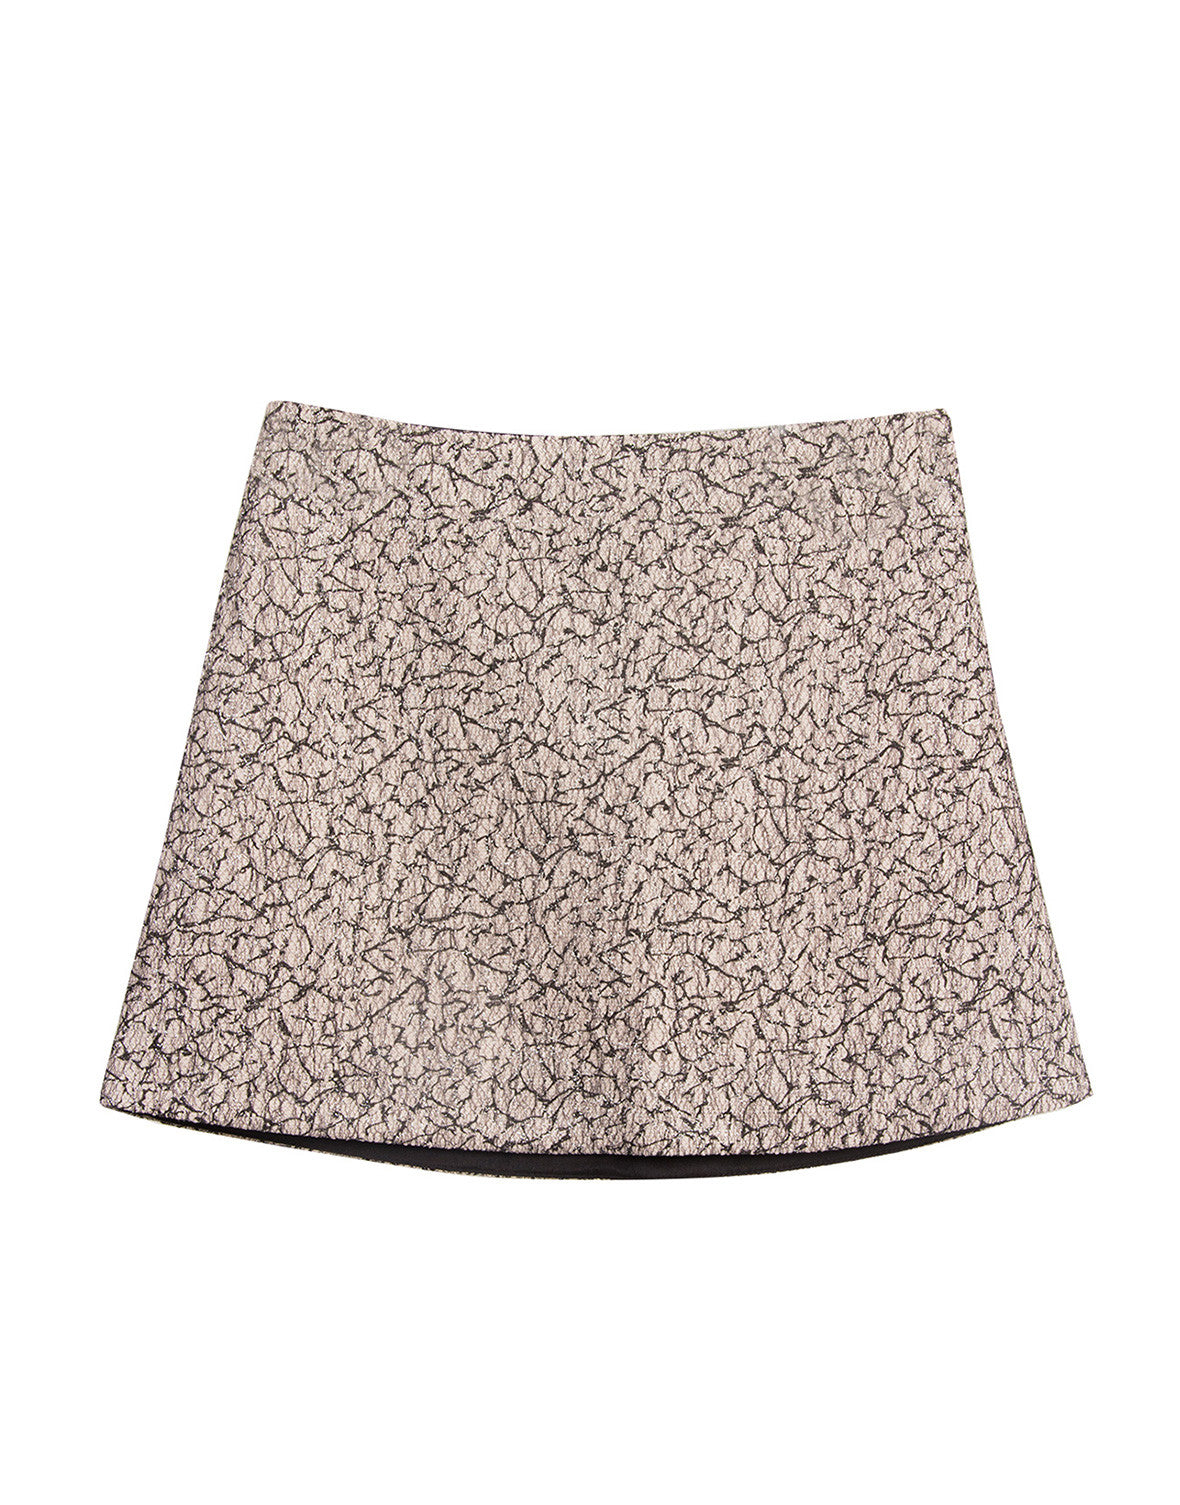 Metallic Woven Jacquard Mini Skirt